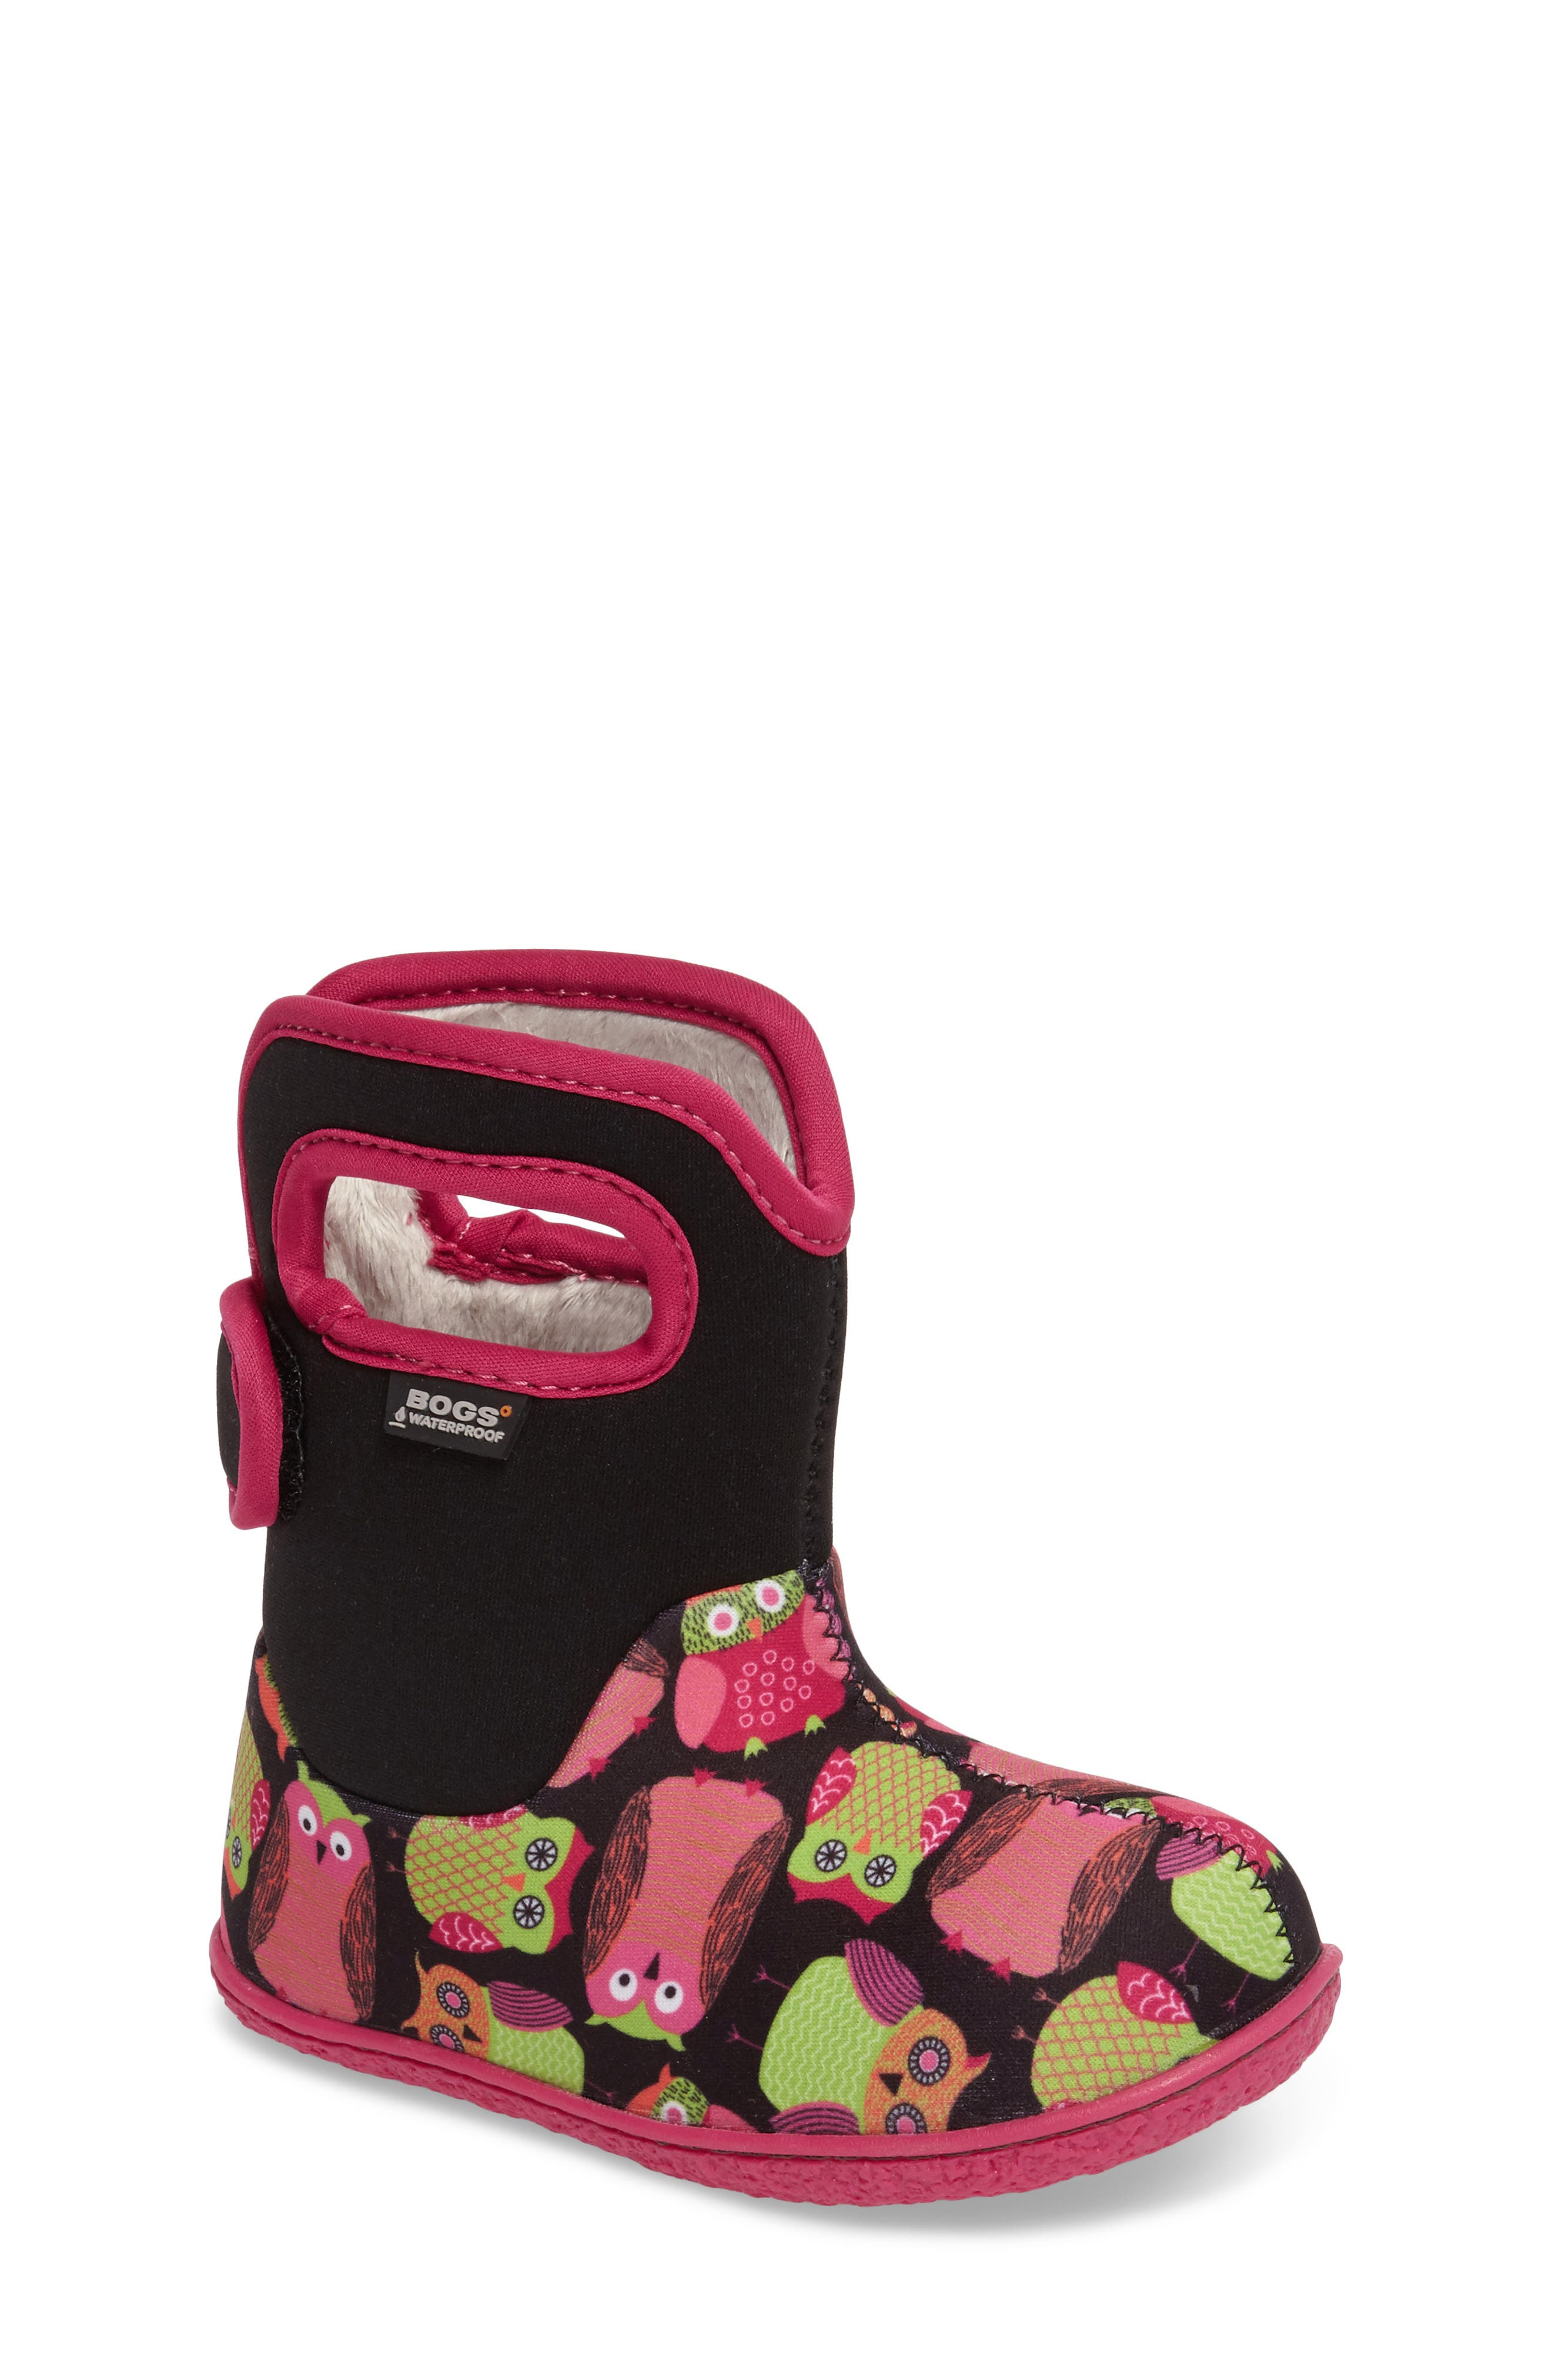 Main Image - Bogs Baby Bogs Classic Owls Insulated Waterproof Boot (Baby, Walker & Toddler)